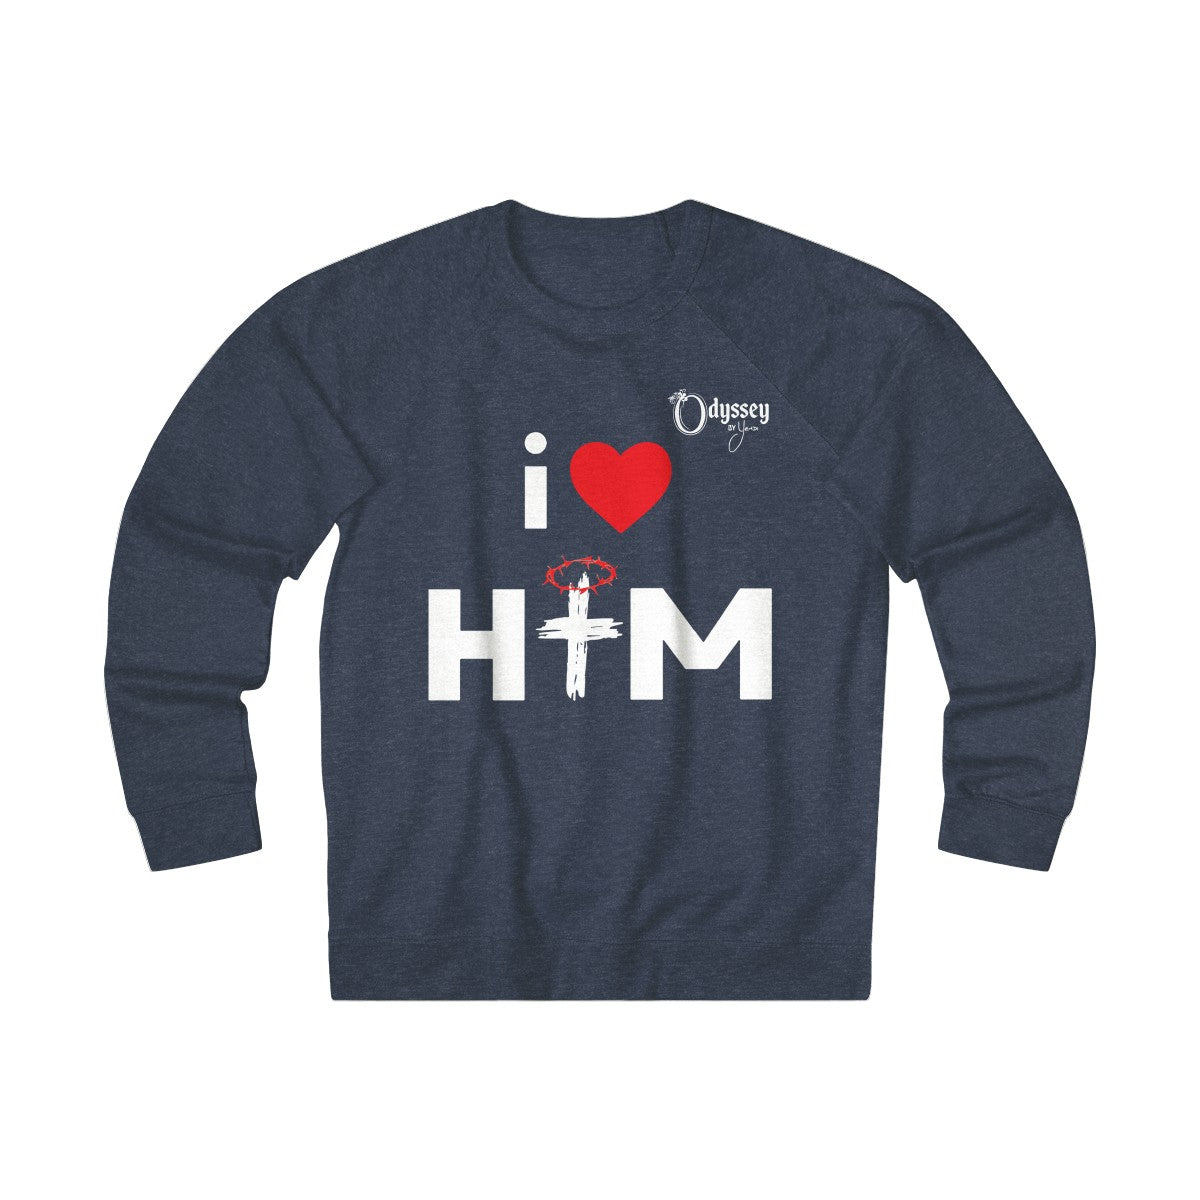 Odyssey I Love Him Women's Crewneck Sweatshirt